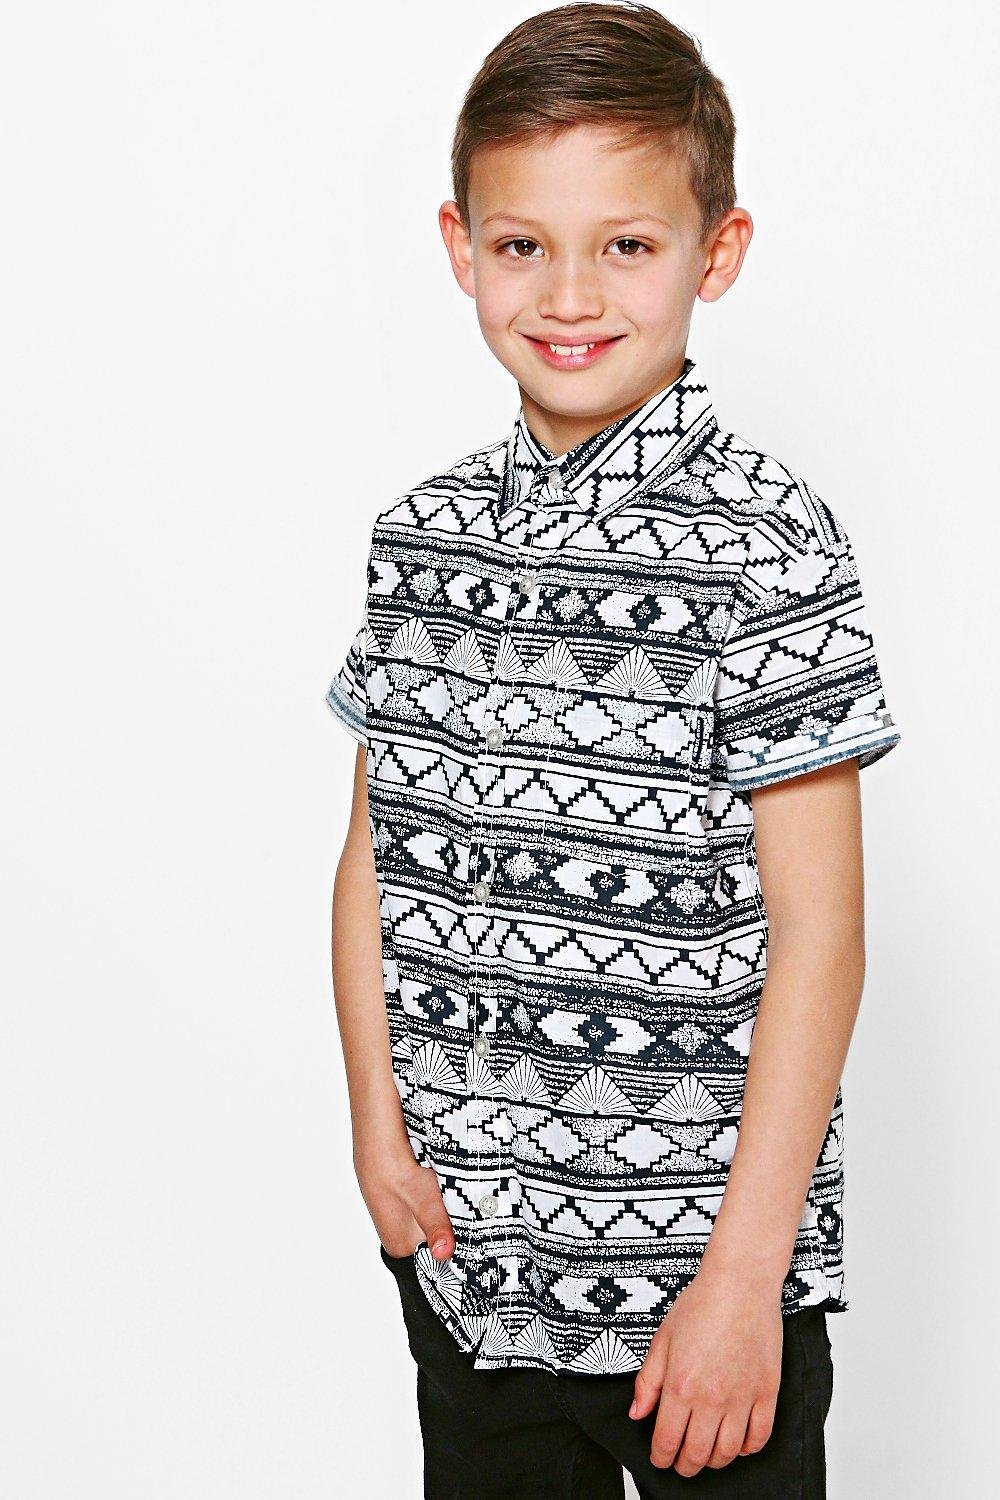 Under Armour gives him a wildly sporty look with this fun graphic-print T-shirt designed in soft, quick-drying material.